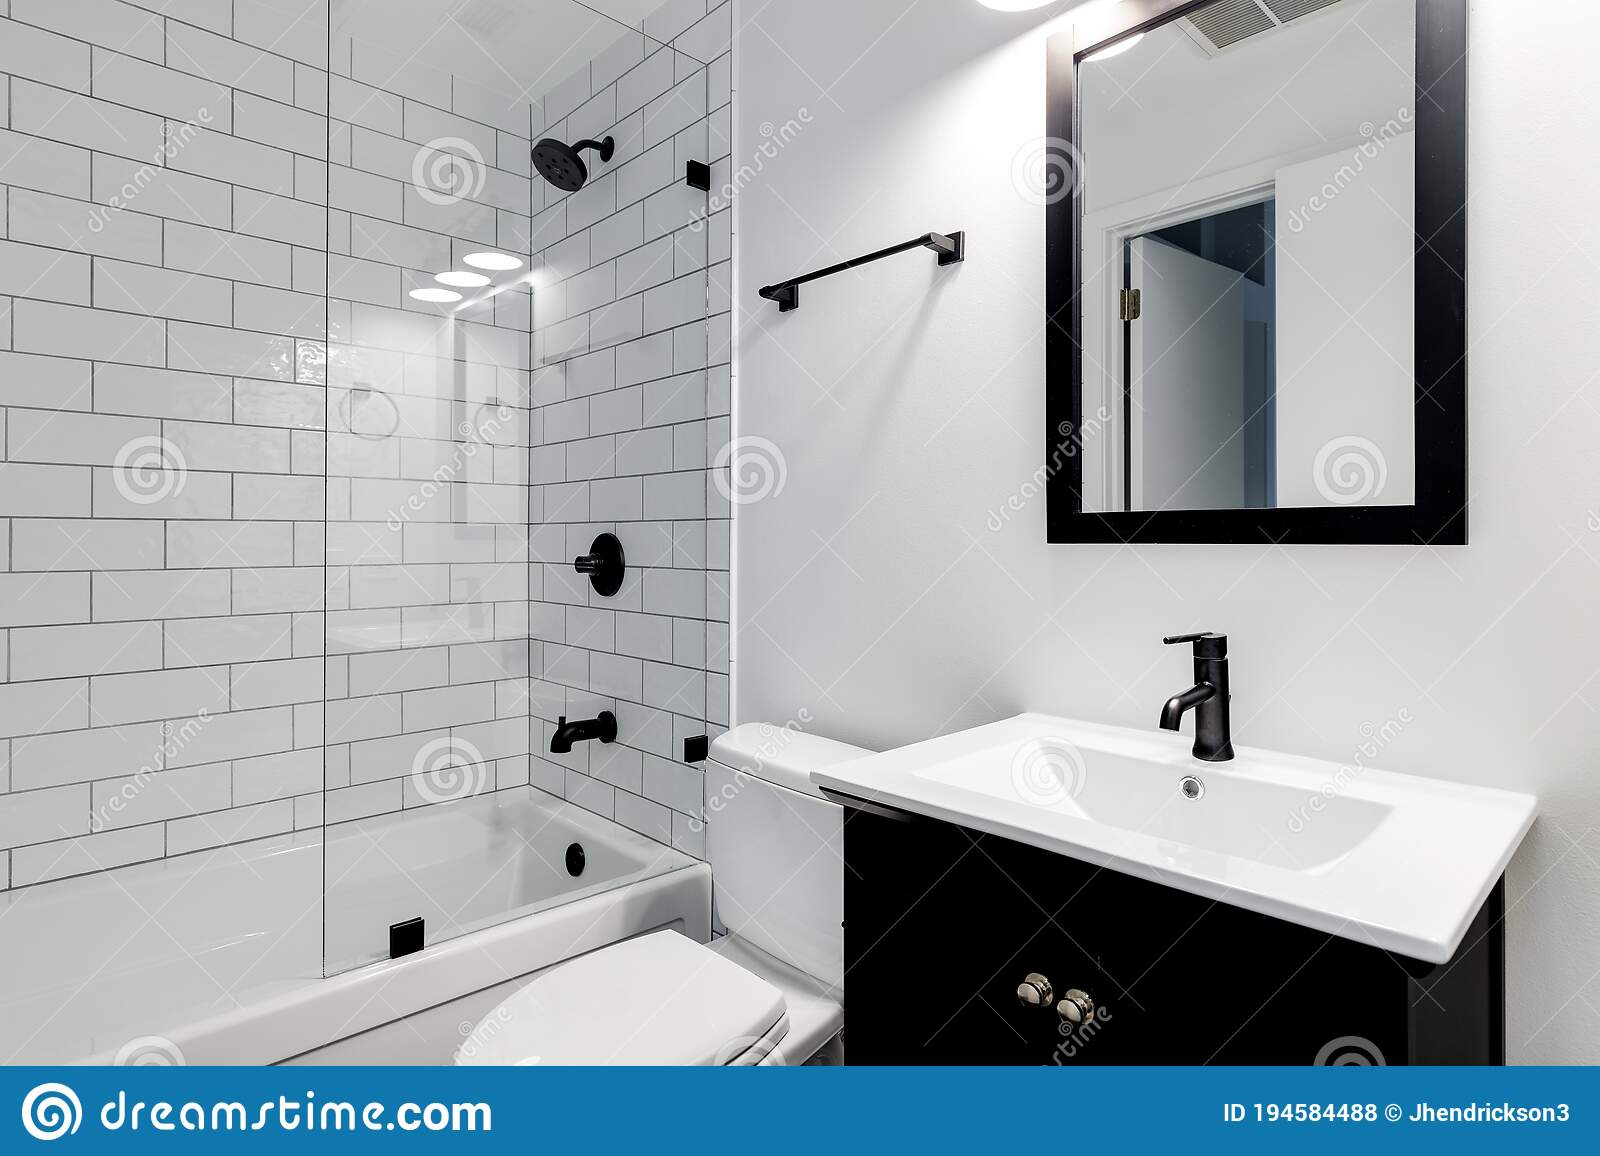 2 669 Black Vanity Photos Free Royalty Free Stock Photos From Dreamstime